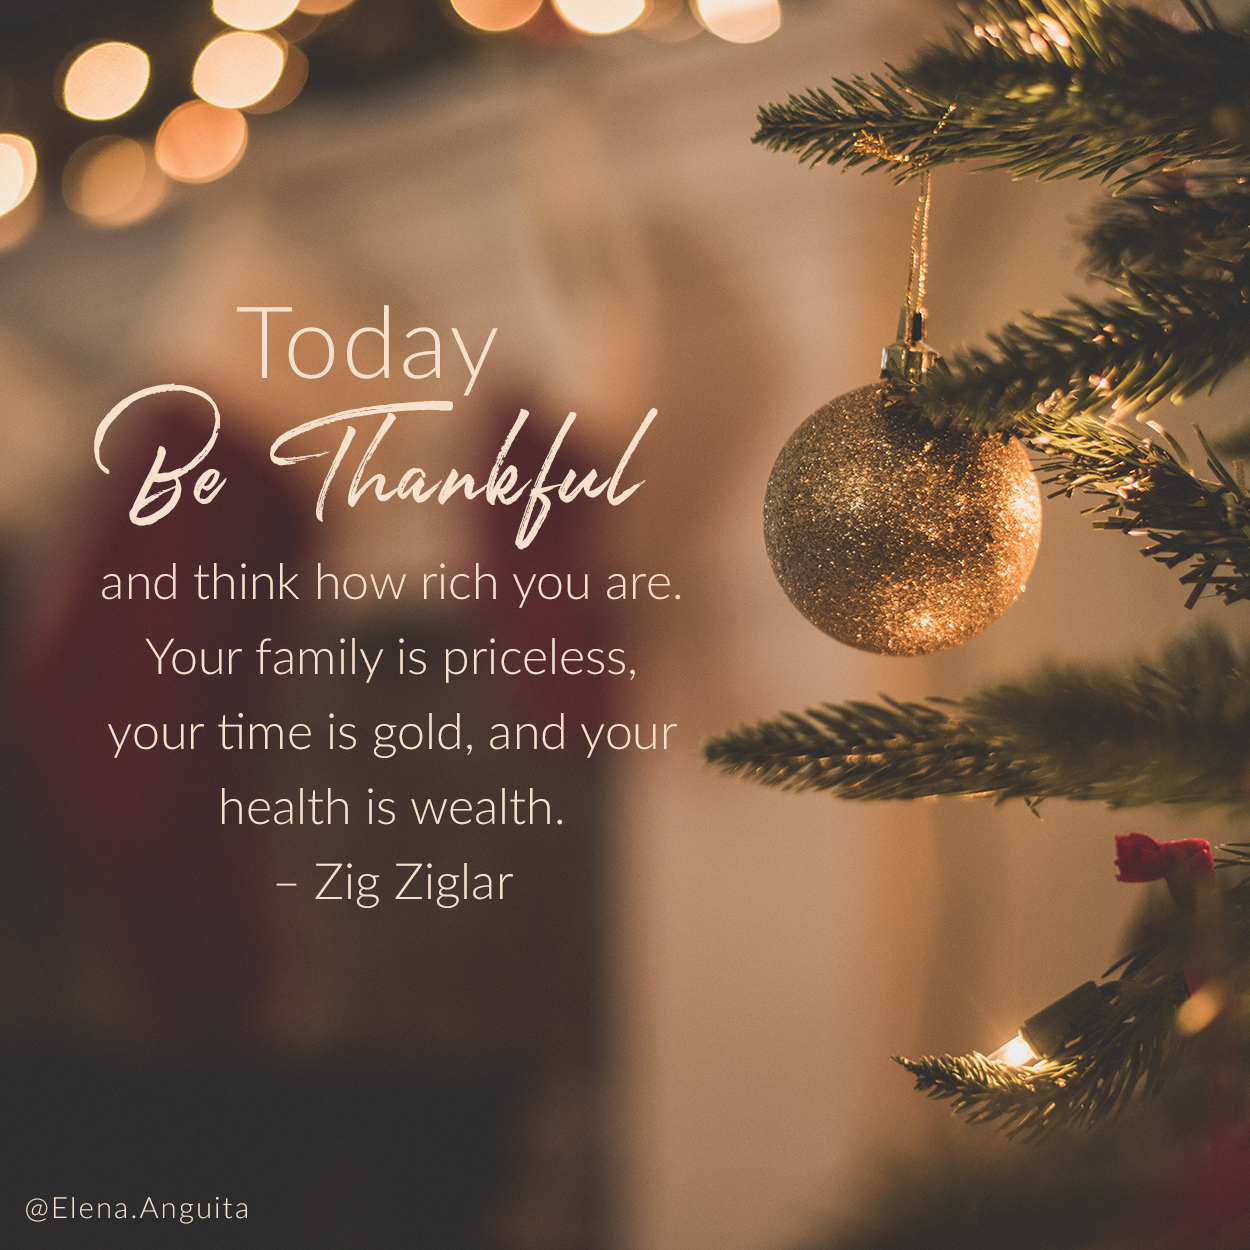 Christmas Eve Is A Wonderful Time To Reflect And Be Grateful For All We Have Right Now Sending Yo Christmas Quotes Best Christmas Quotes Christmas Reflections